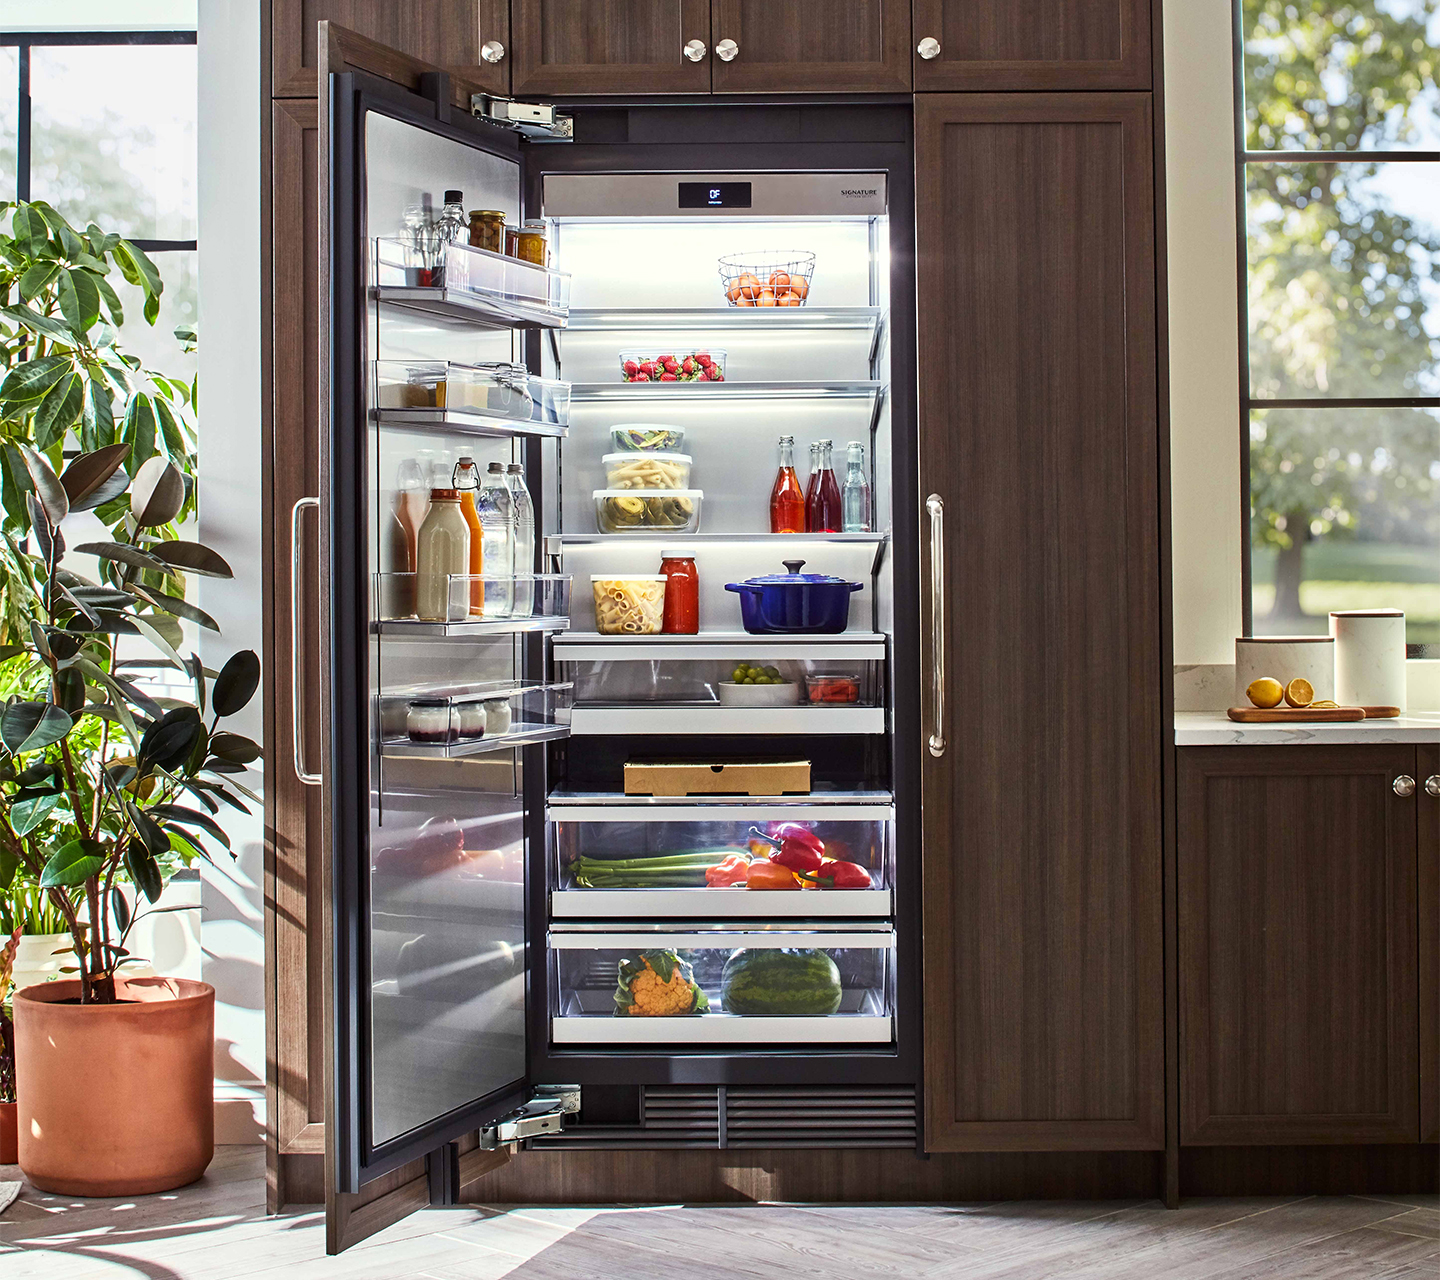 SKS | 24-inch Built-in Refrigeration